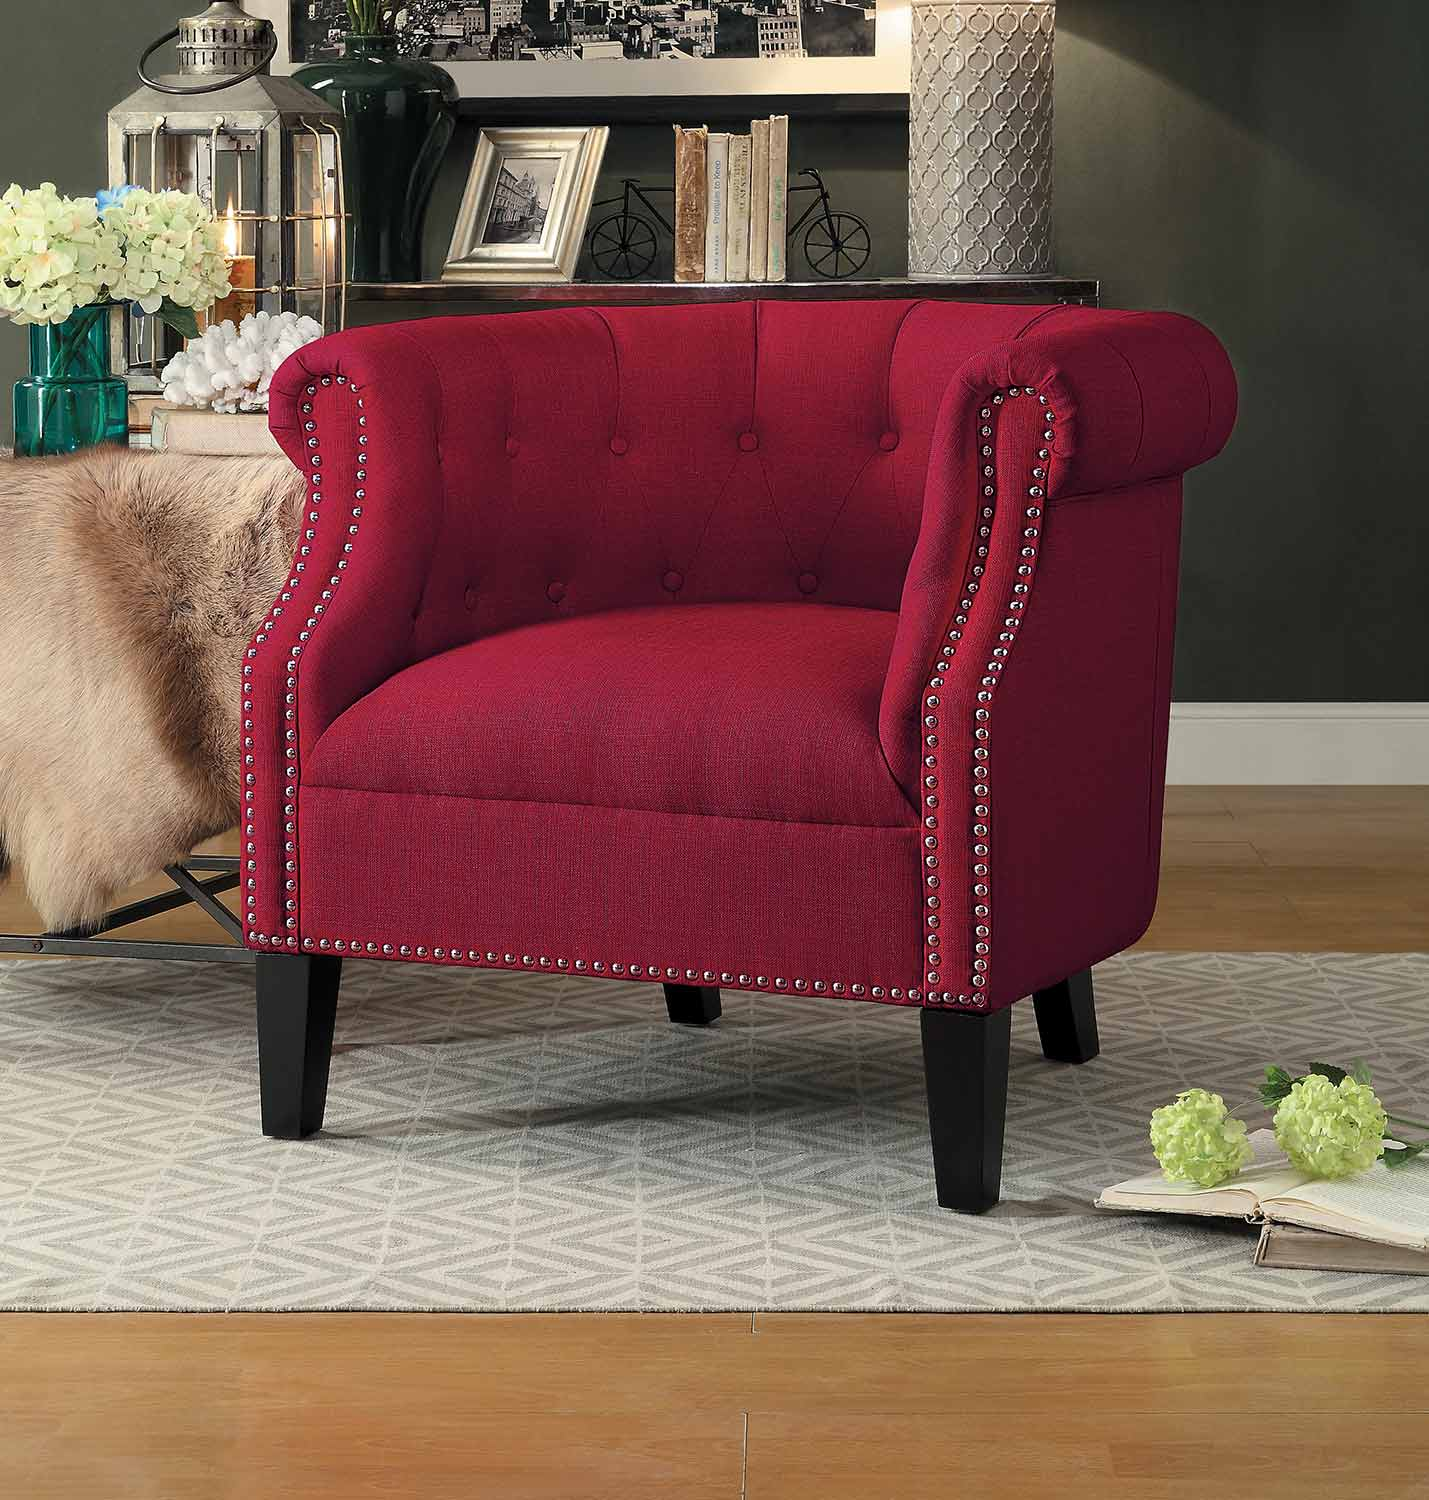 Homelegance Karlock Accent Chair - Red